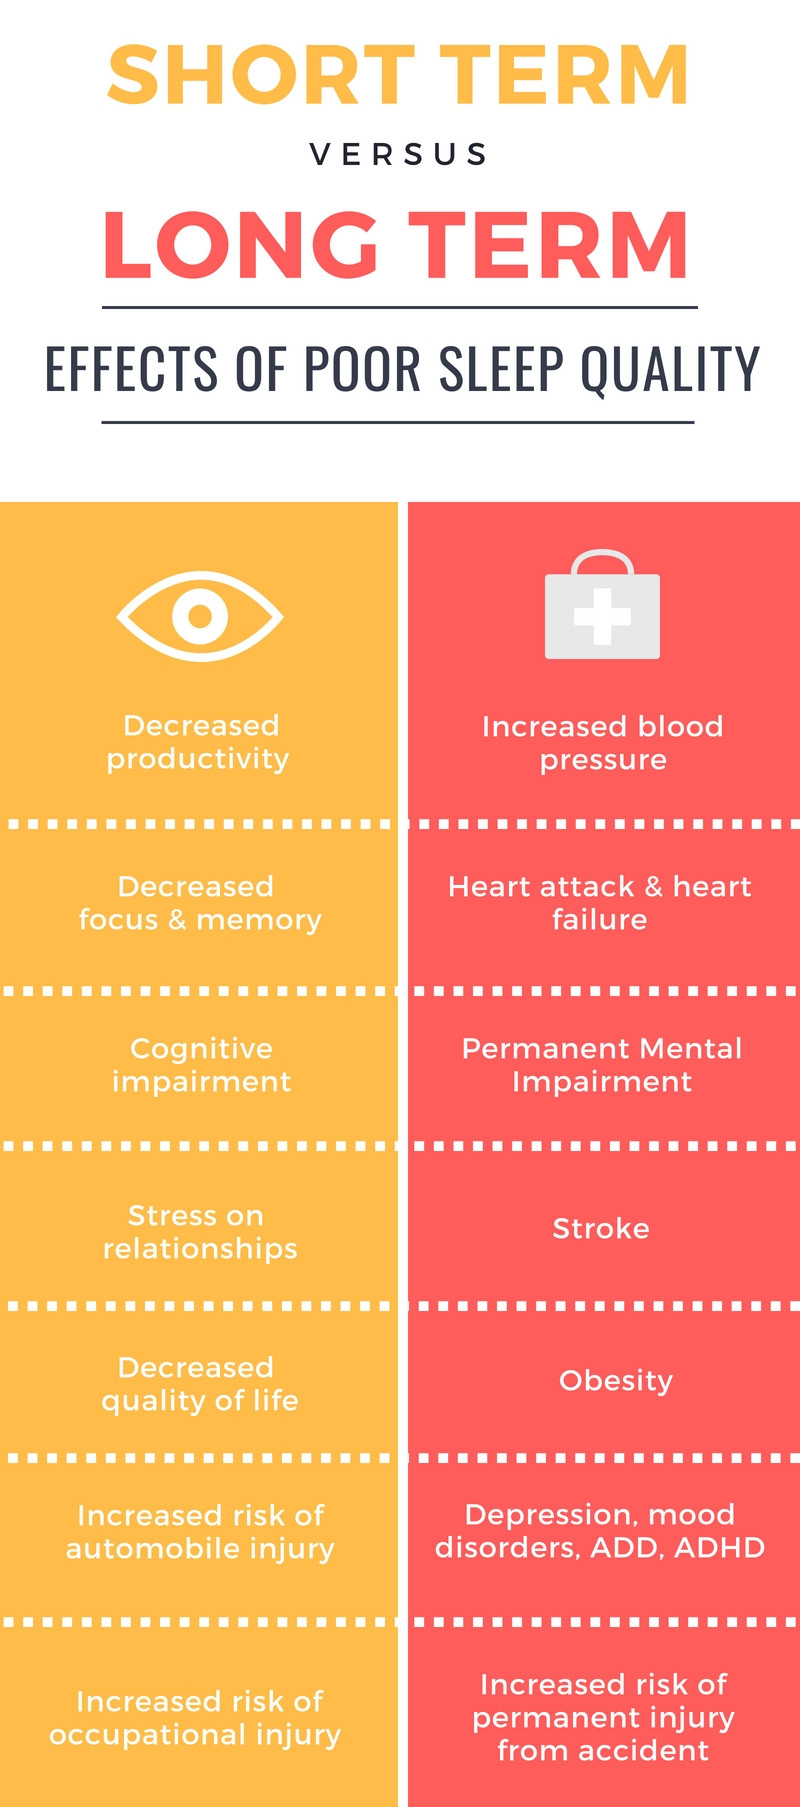 Short Term Versus Long Term Effects of Poor Sleep Quality: Blood Pressure, Heart Disease & Heart Failure, Mental Impairment, Stroke, Obesity, Depression, Mood Disorders, ADD, ADHD, Risk of Permanent Injury